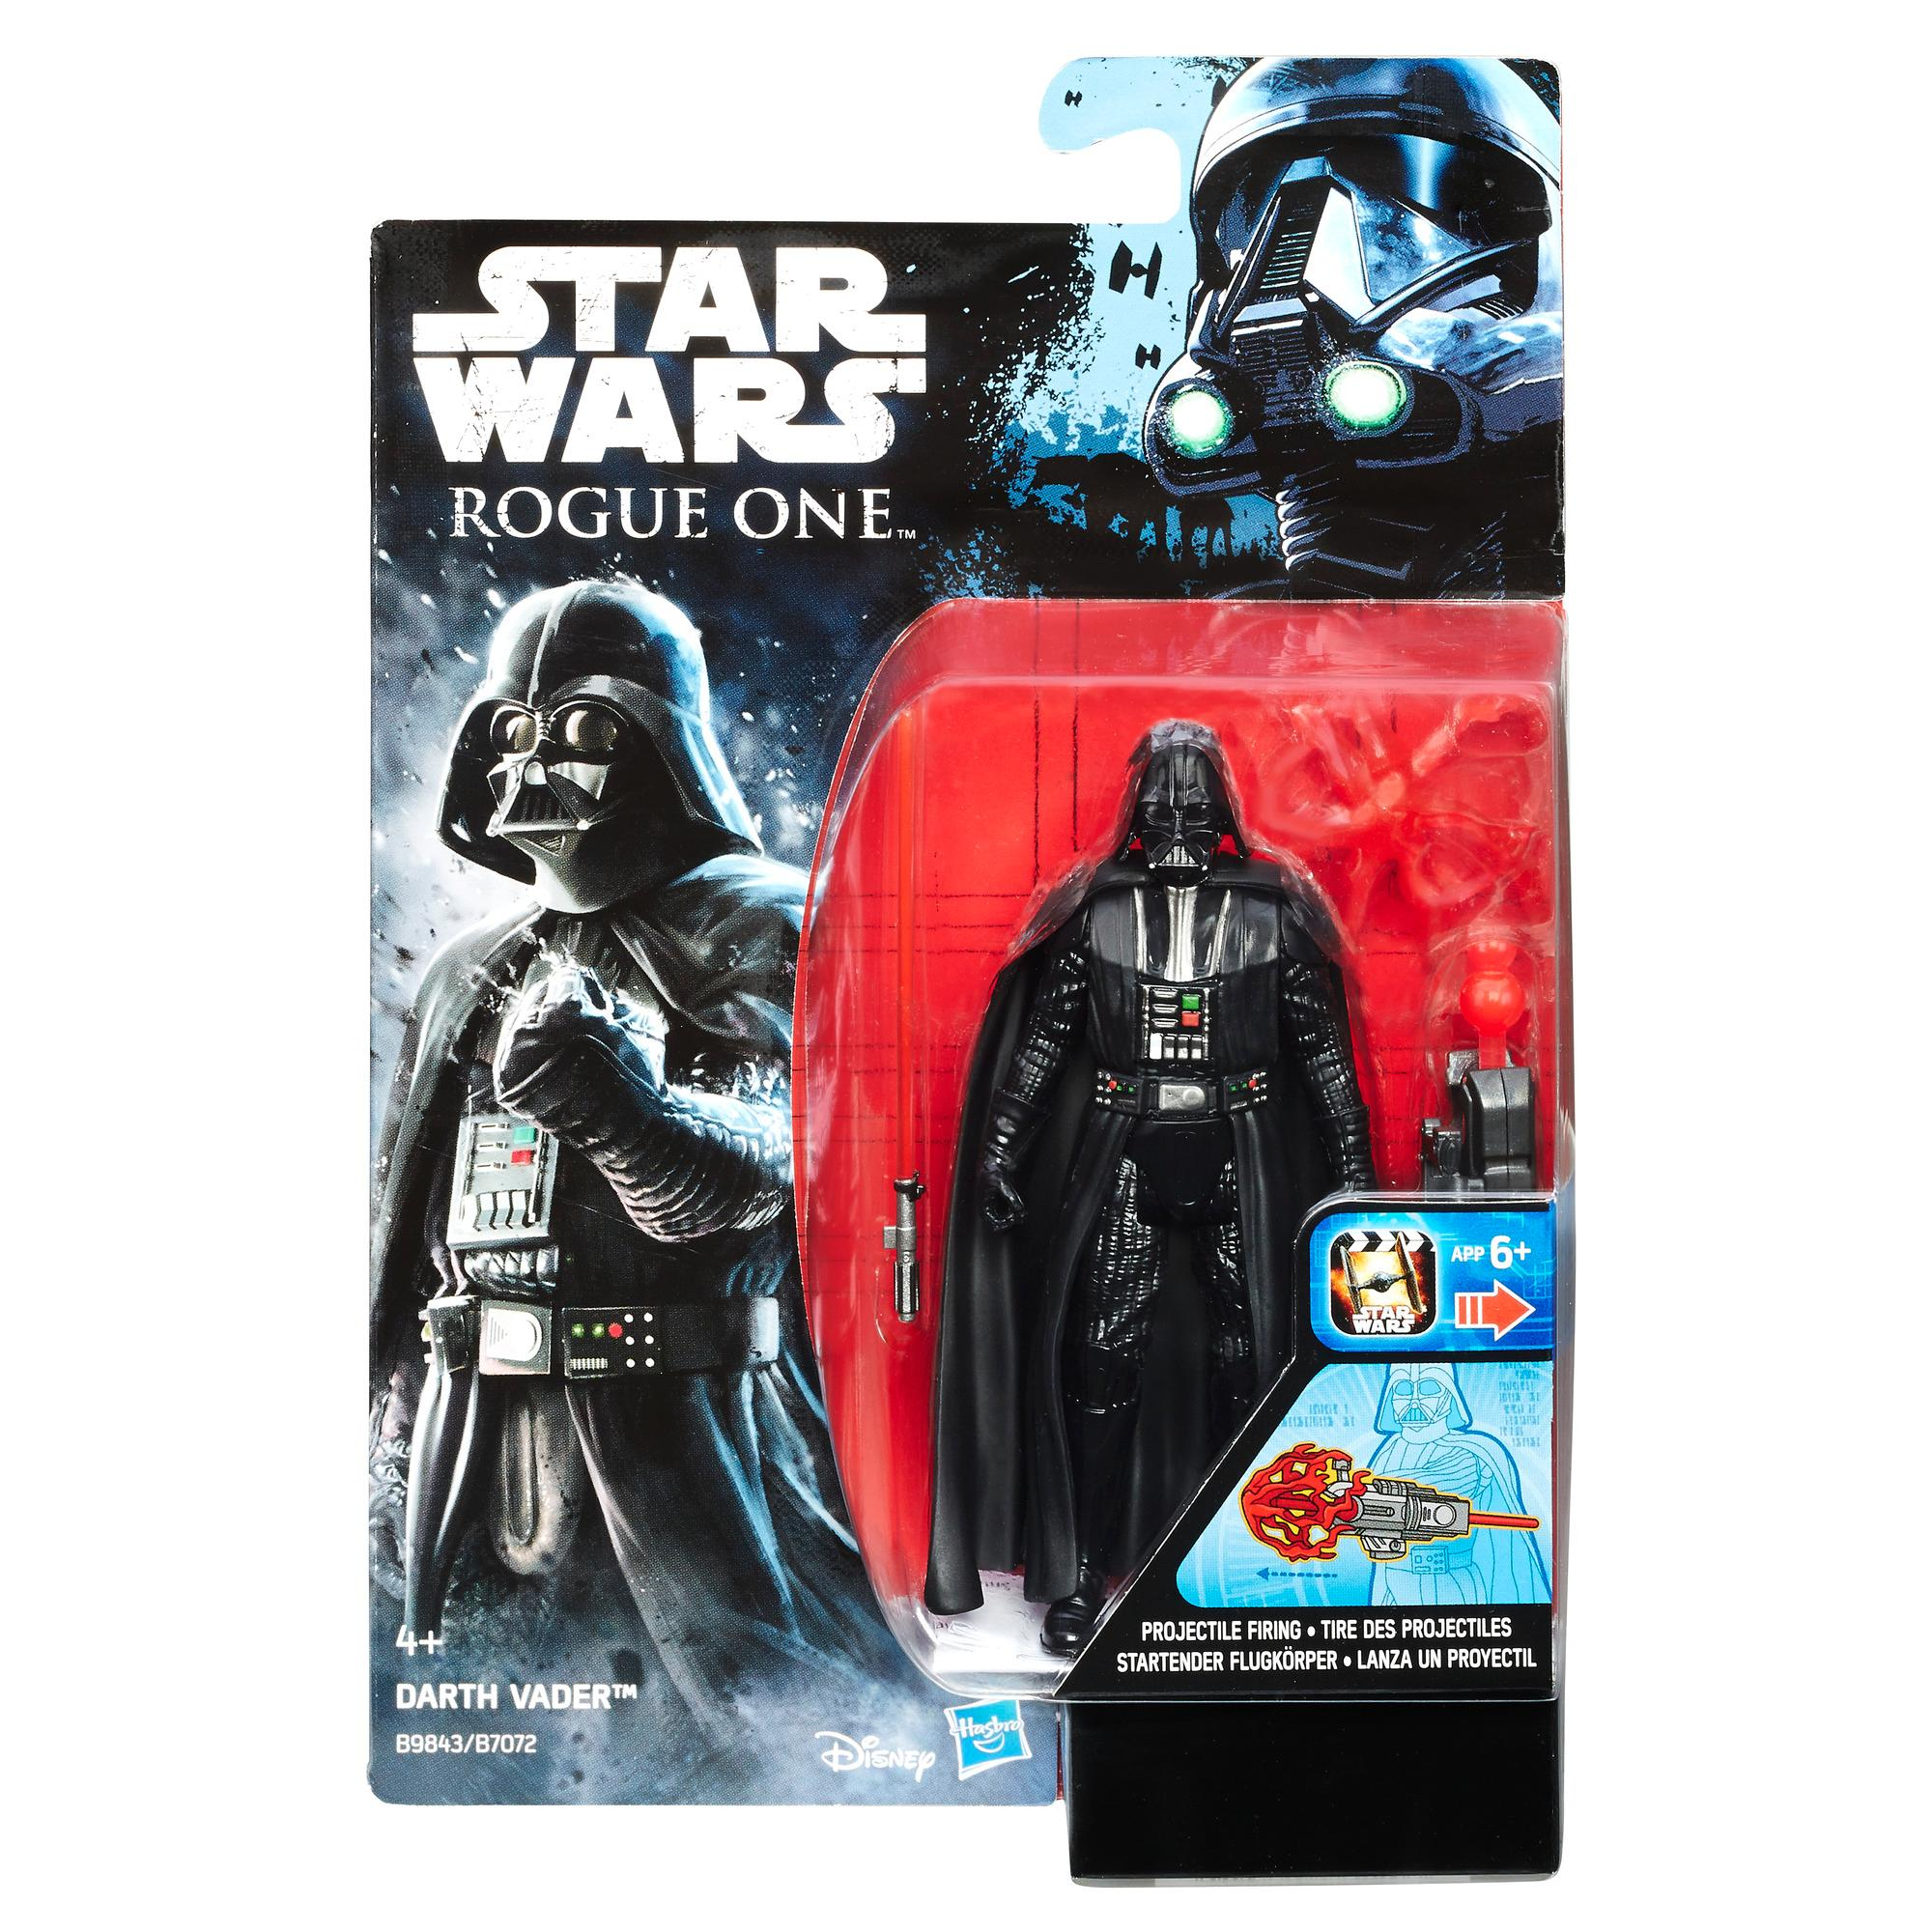 Star Wars Rogue One Darth Vader Figure